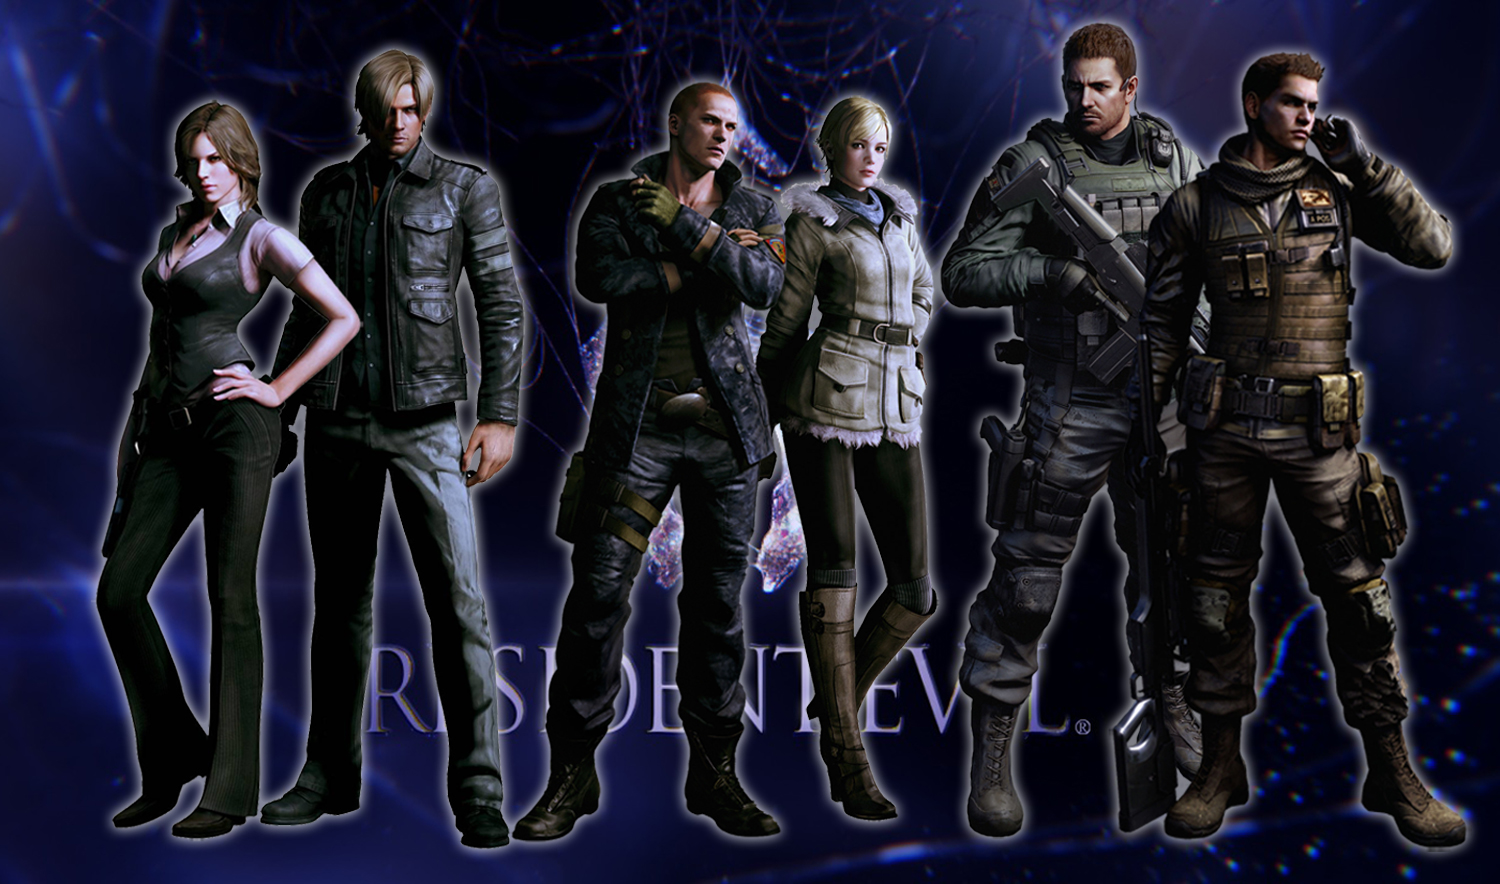 Resident Evil 6 Review | Epicly Amazing